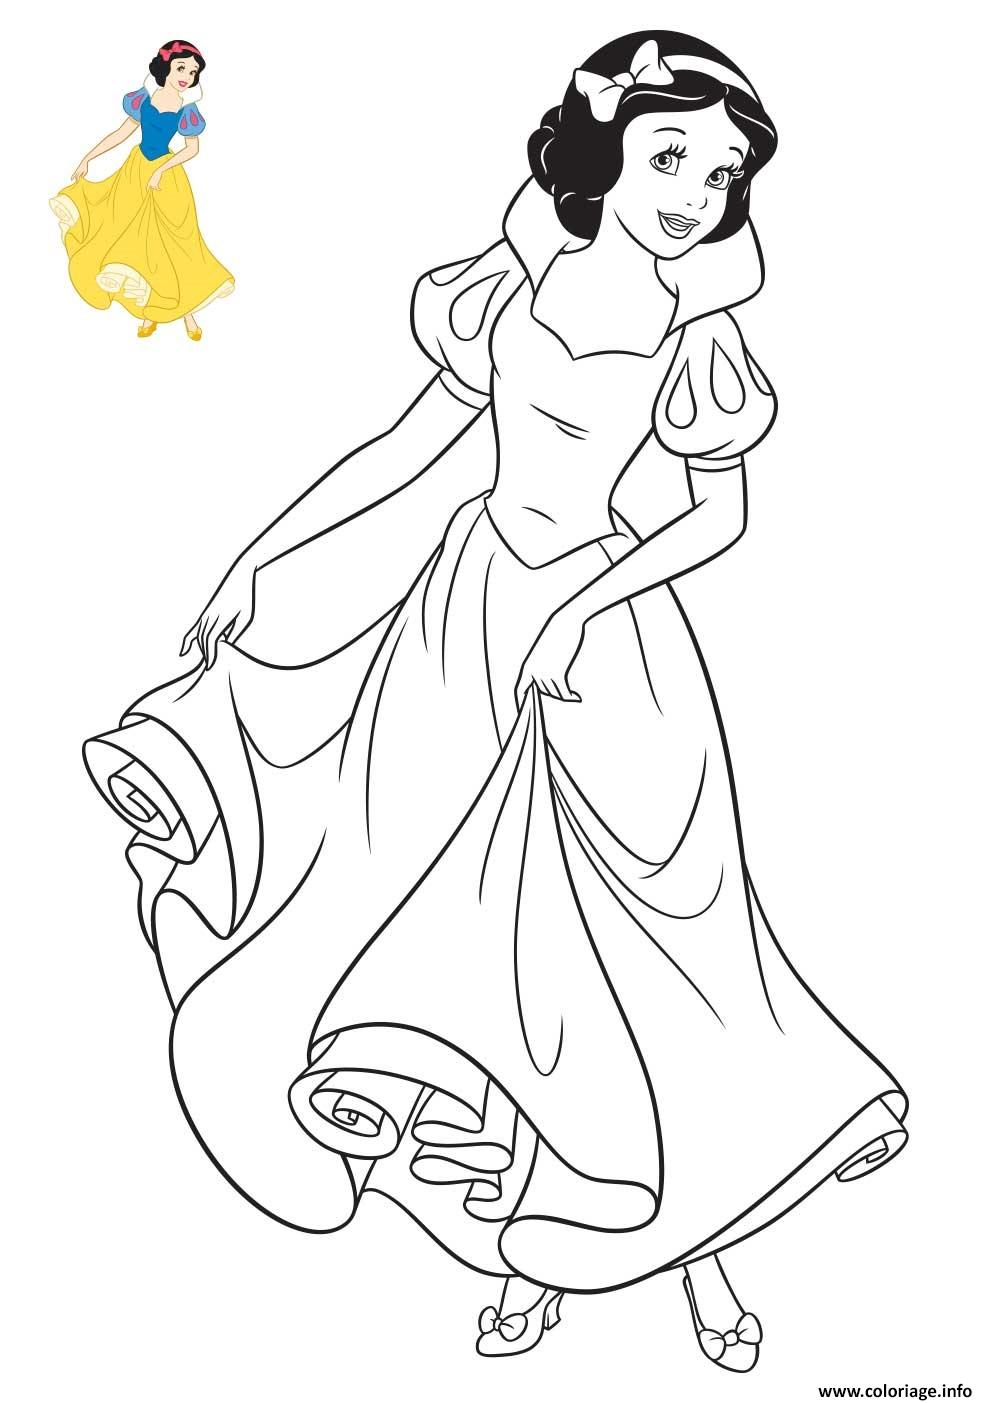 Coloriage princesse disney blanche neige - Coloriages princesse ...